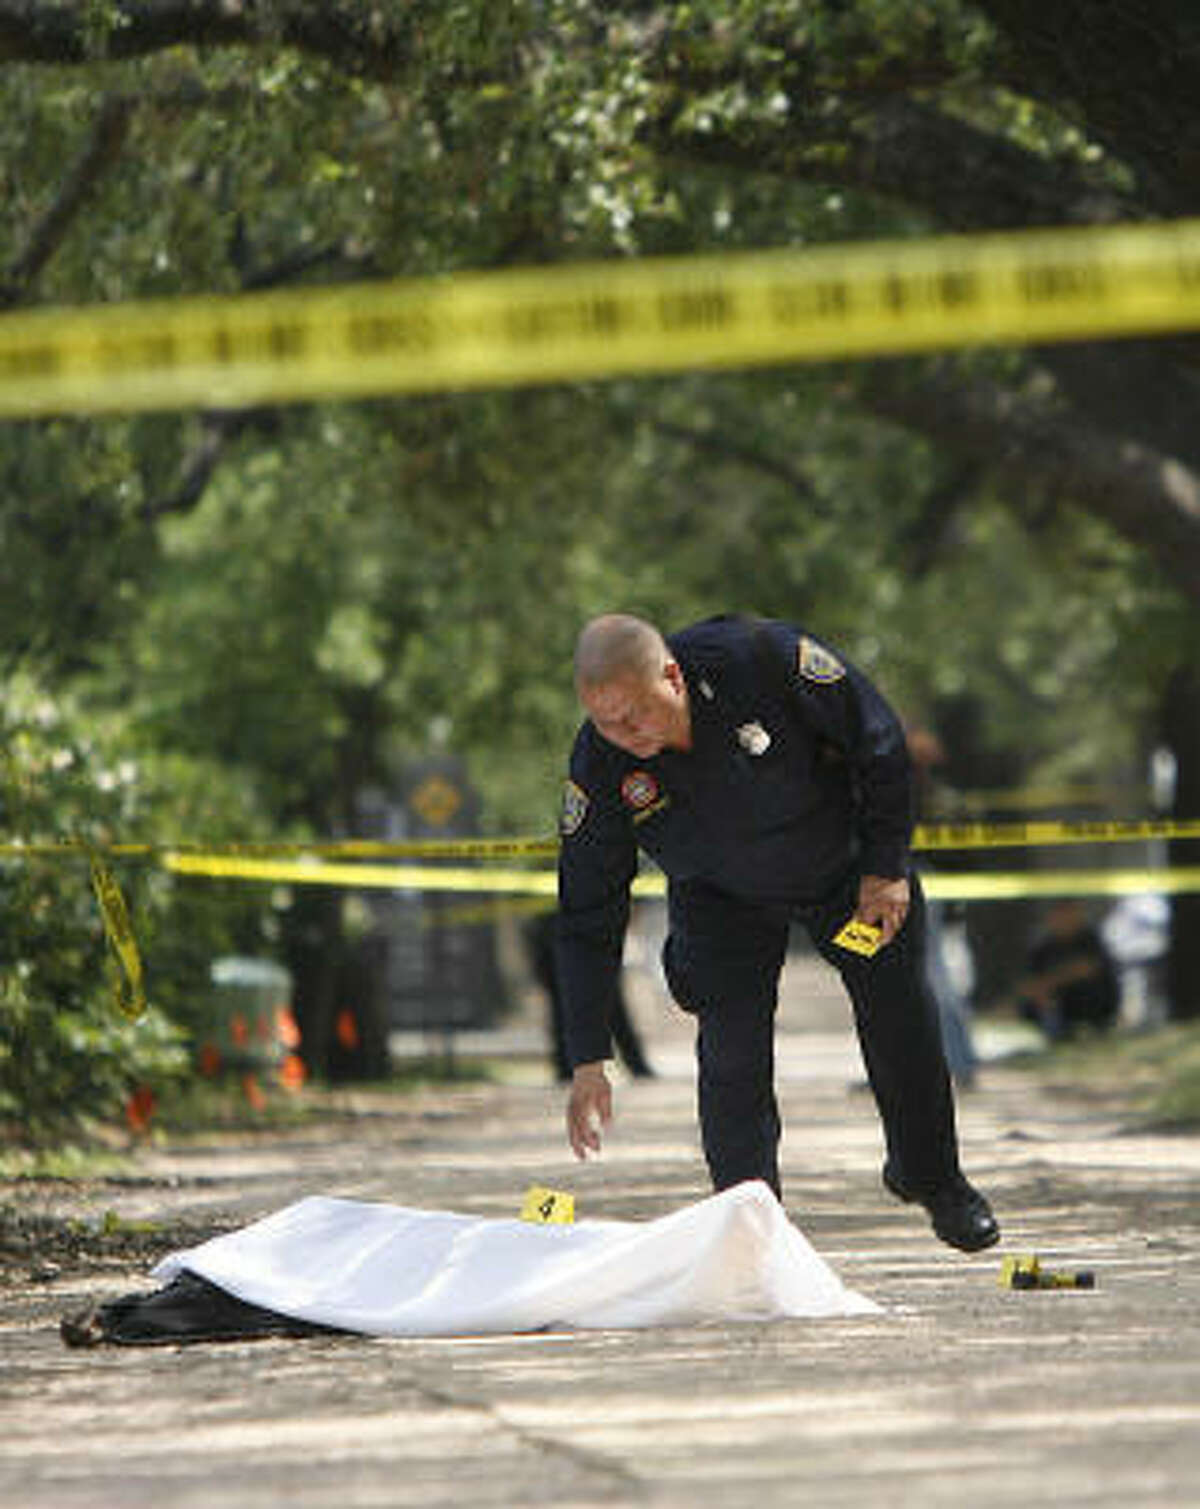 In early May, an officer examines the scene on a jogging trail near Rice University where a Metro police officer fatally shot a man resisting arrest on an assault complaint.